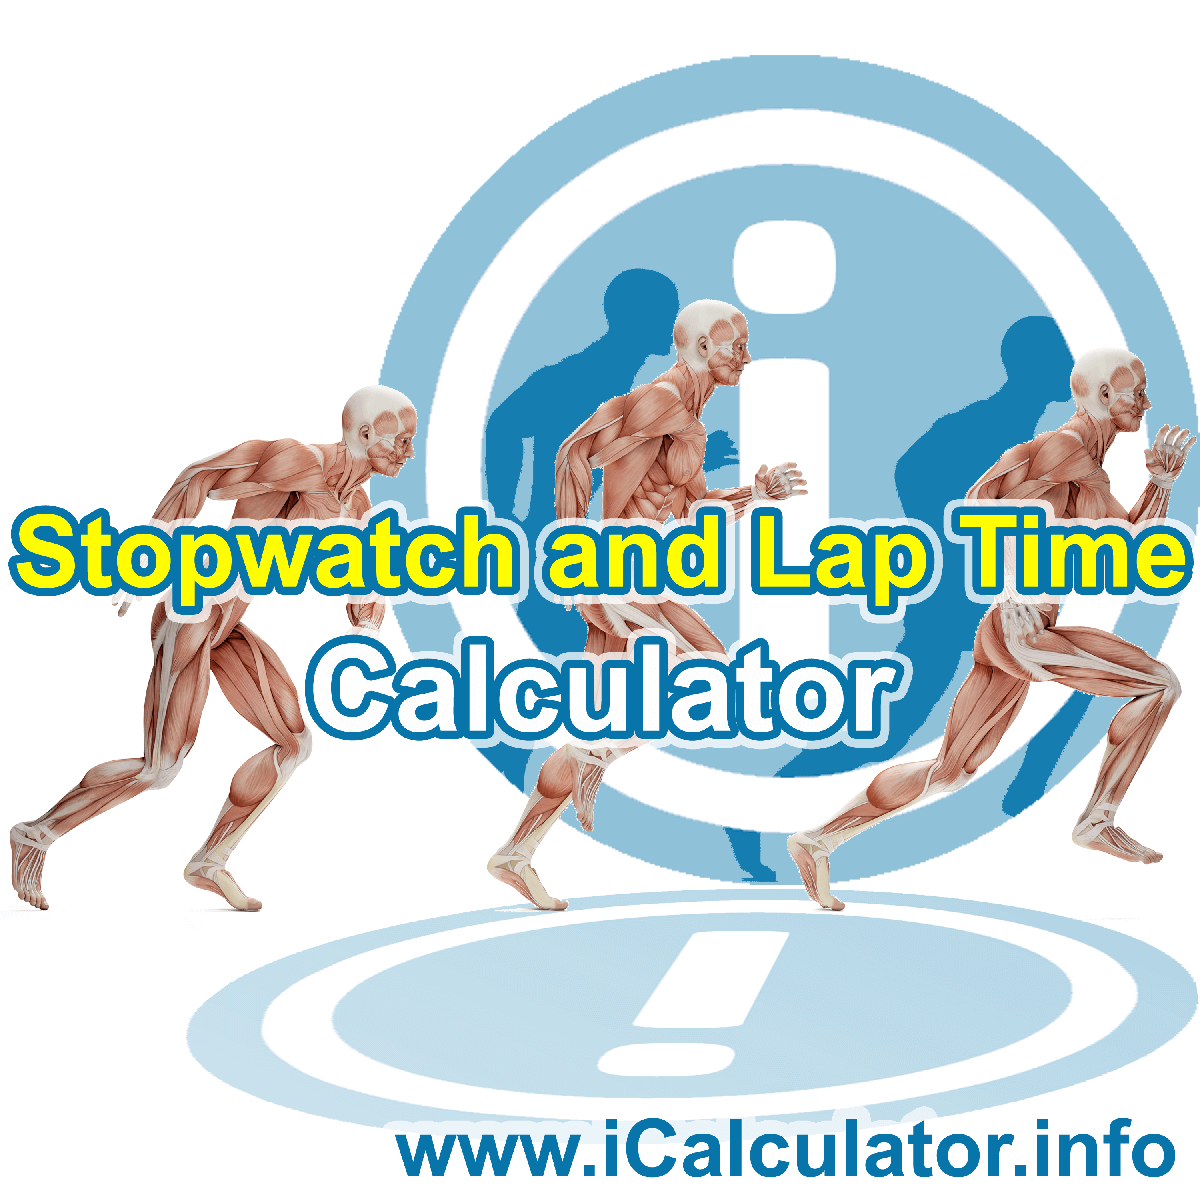 This image shows details about the online sports stopwatch and lap time formula used to calculate lap speed, lap time and totoal workout durations on the sports stopwatch and lap time Calculator by iCalculator